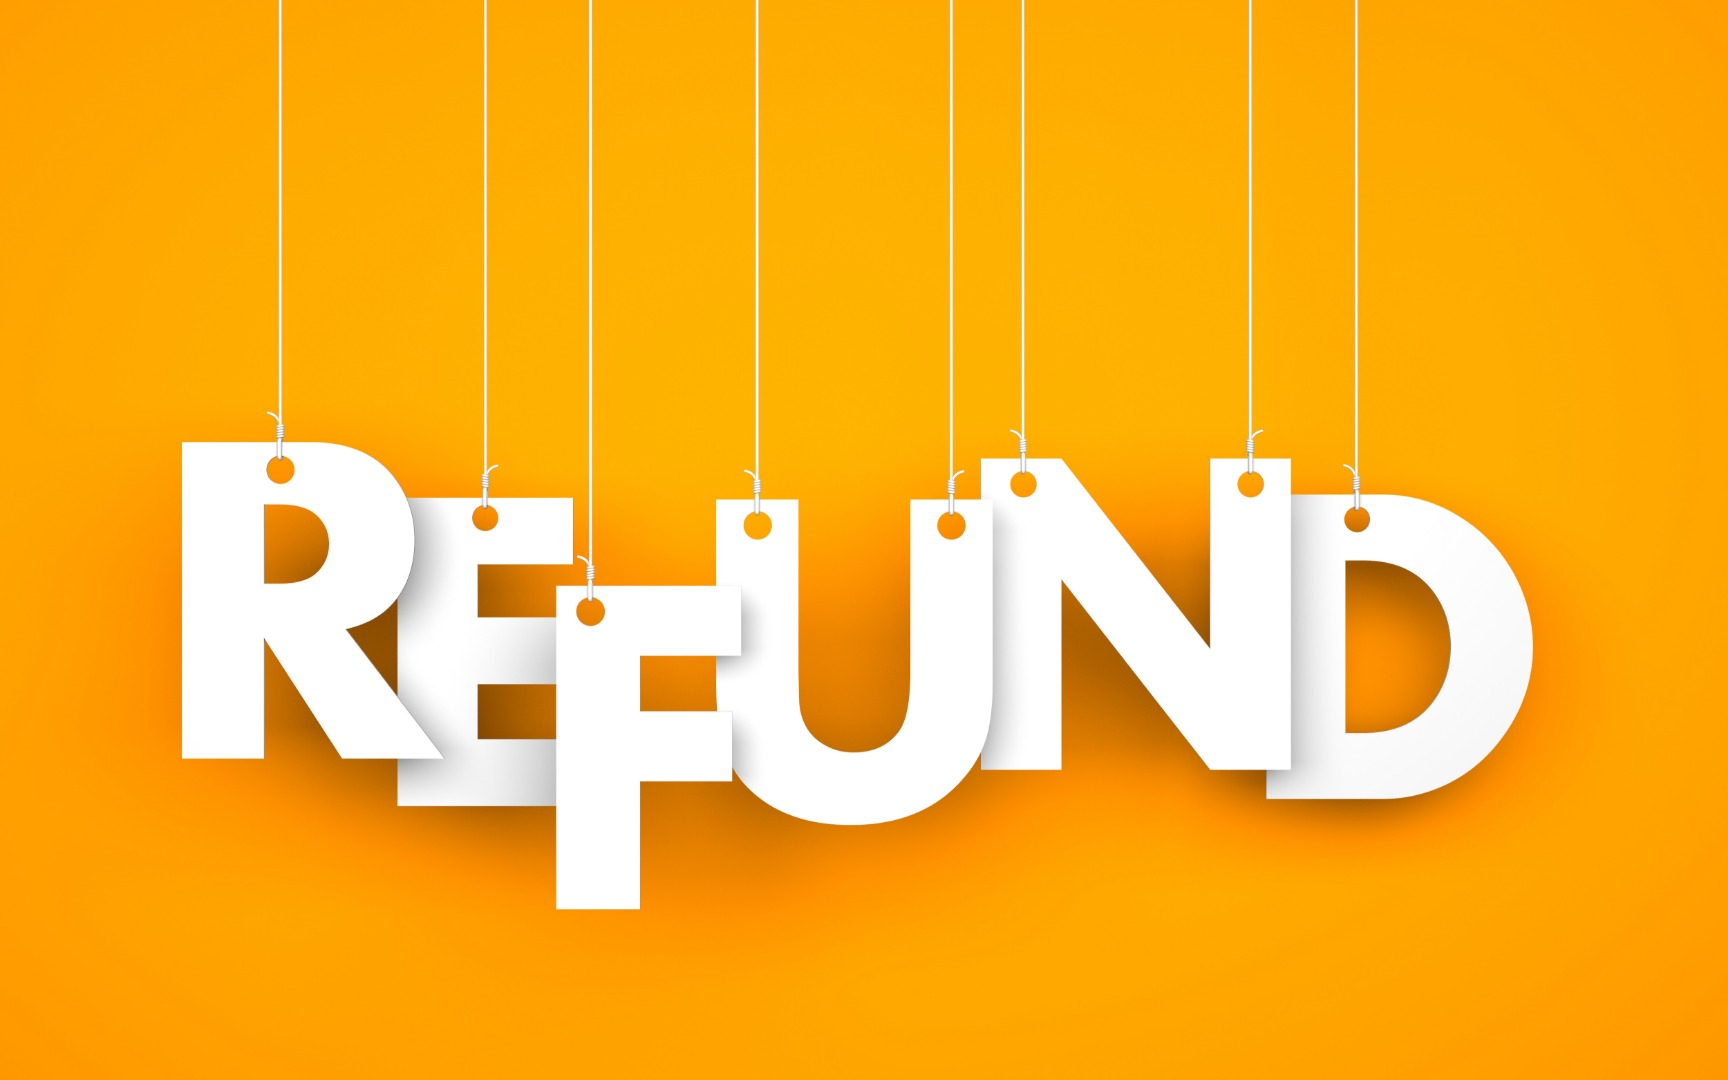 Refund Image